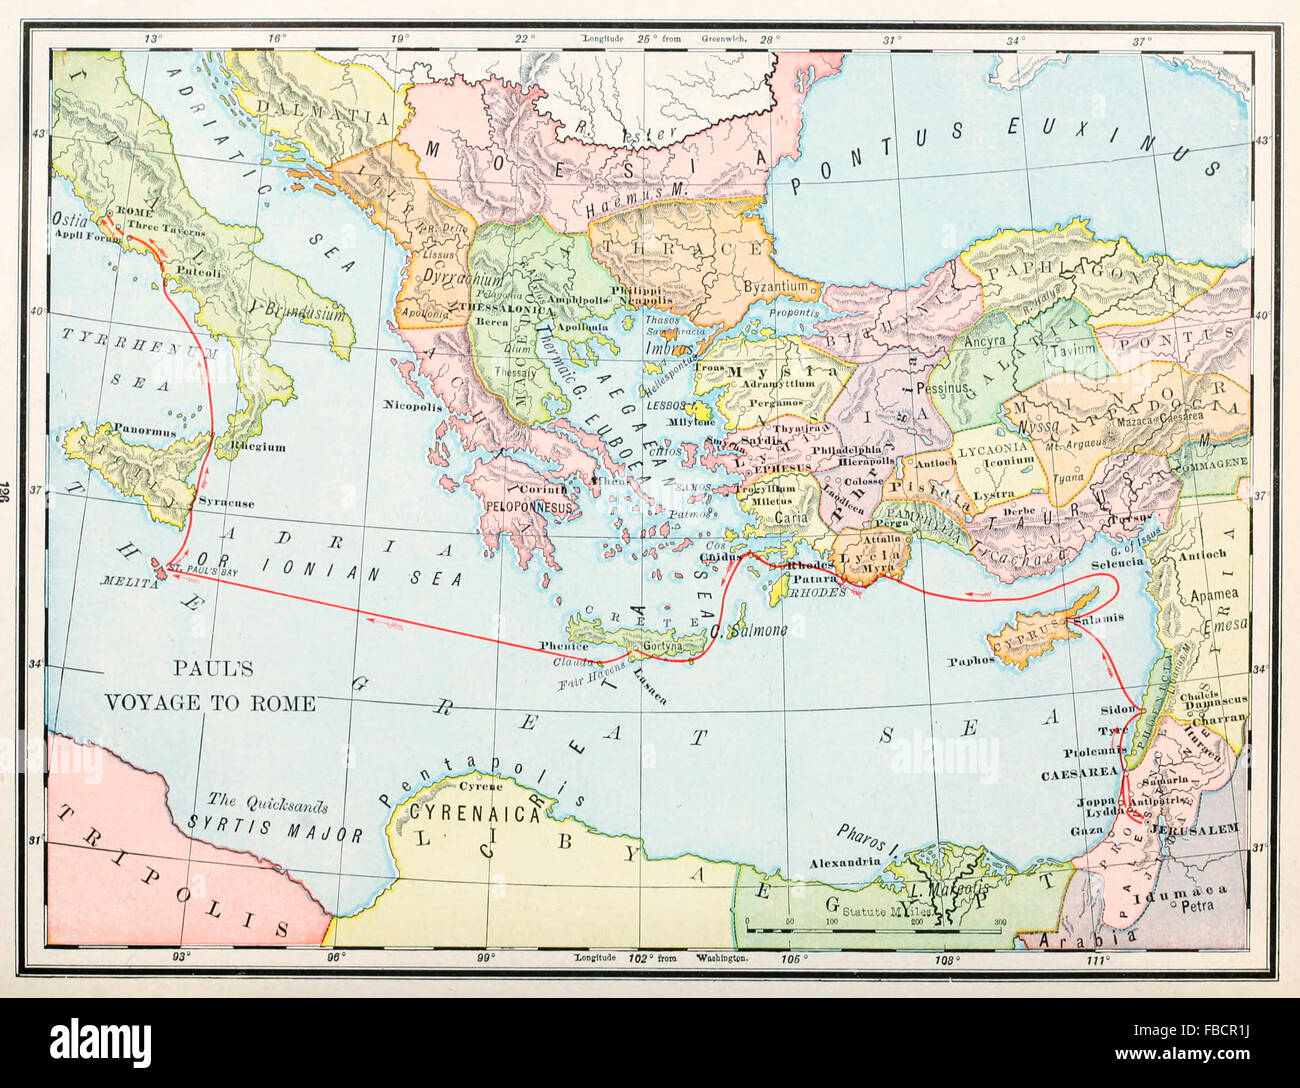 Map of apostle pauls voyage to rome early christian ministry map of apostle pauls voyage to rome early christian ministry sciox Choice Image